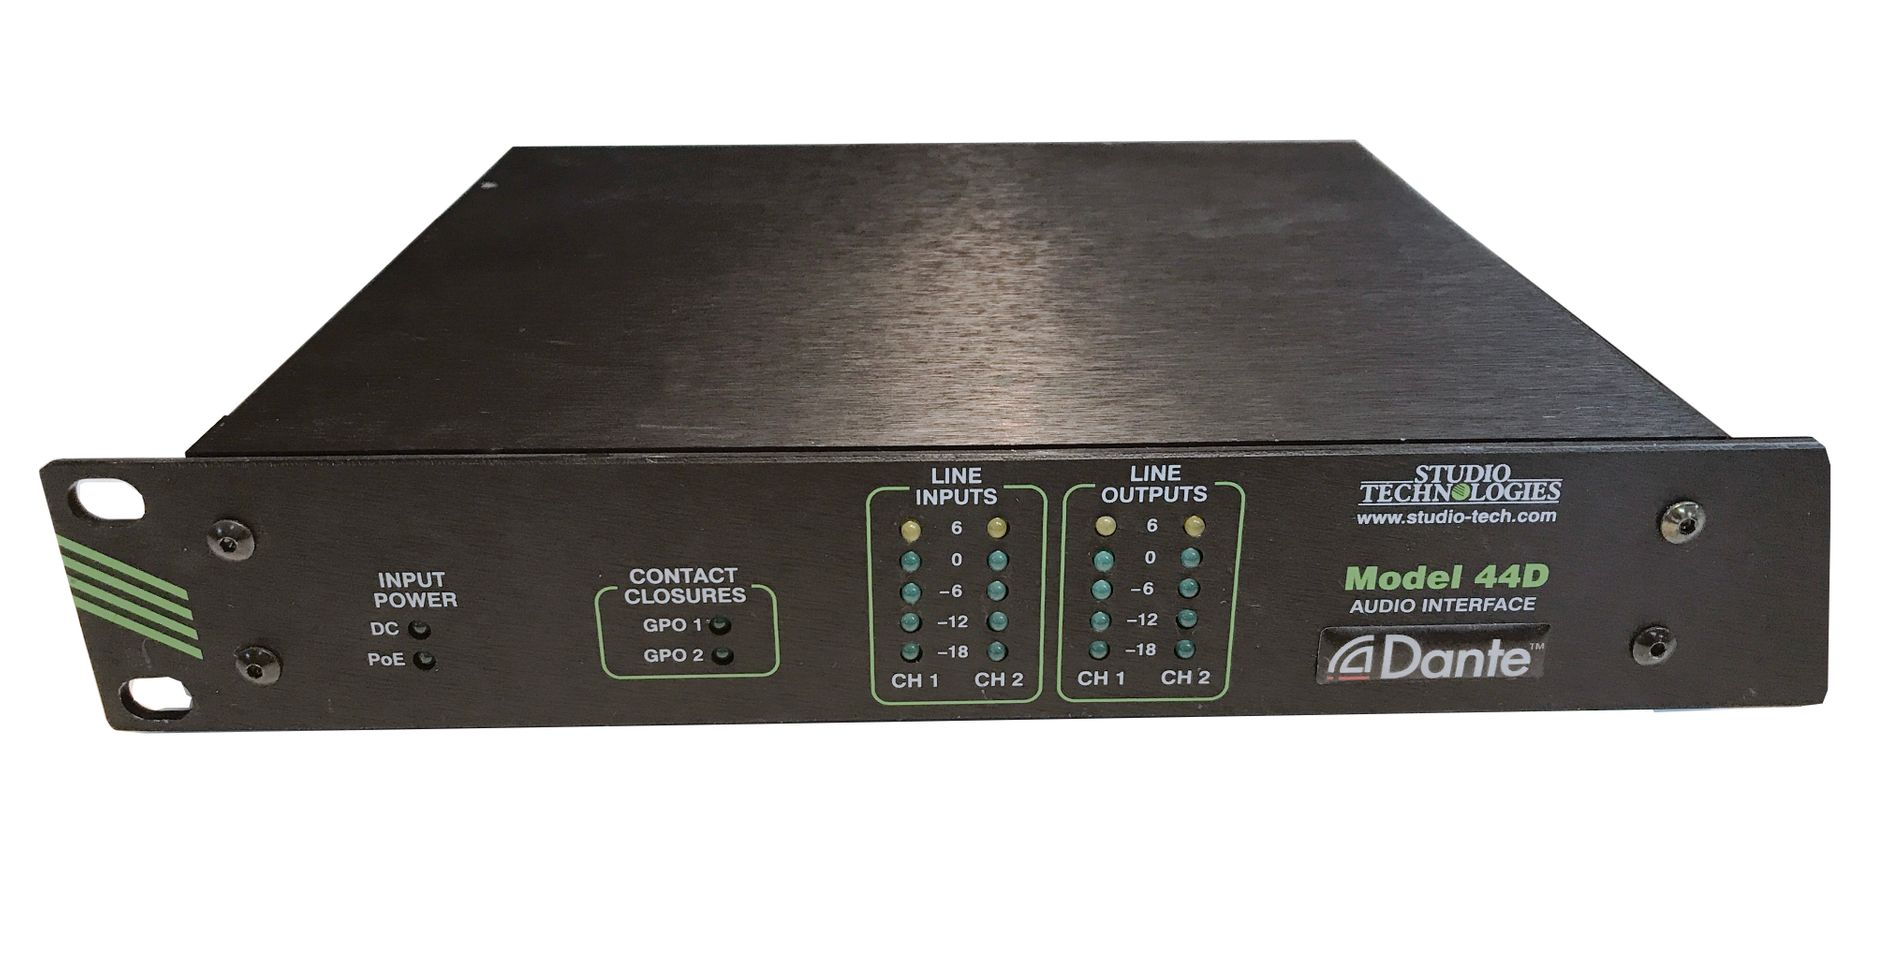 Studio-Tech Model 44D available at Hollywood Sound Systems